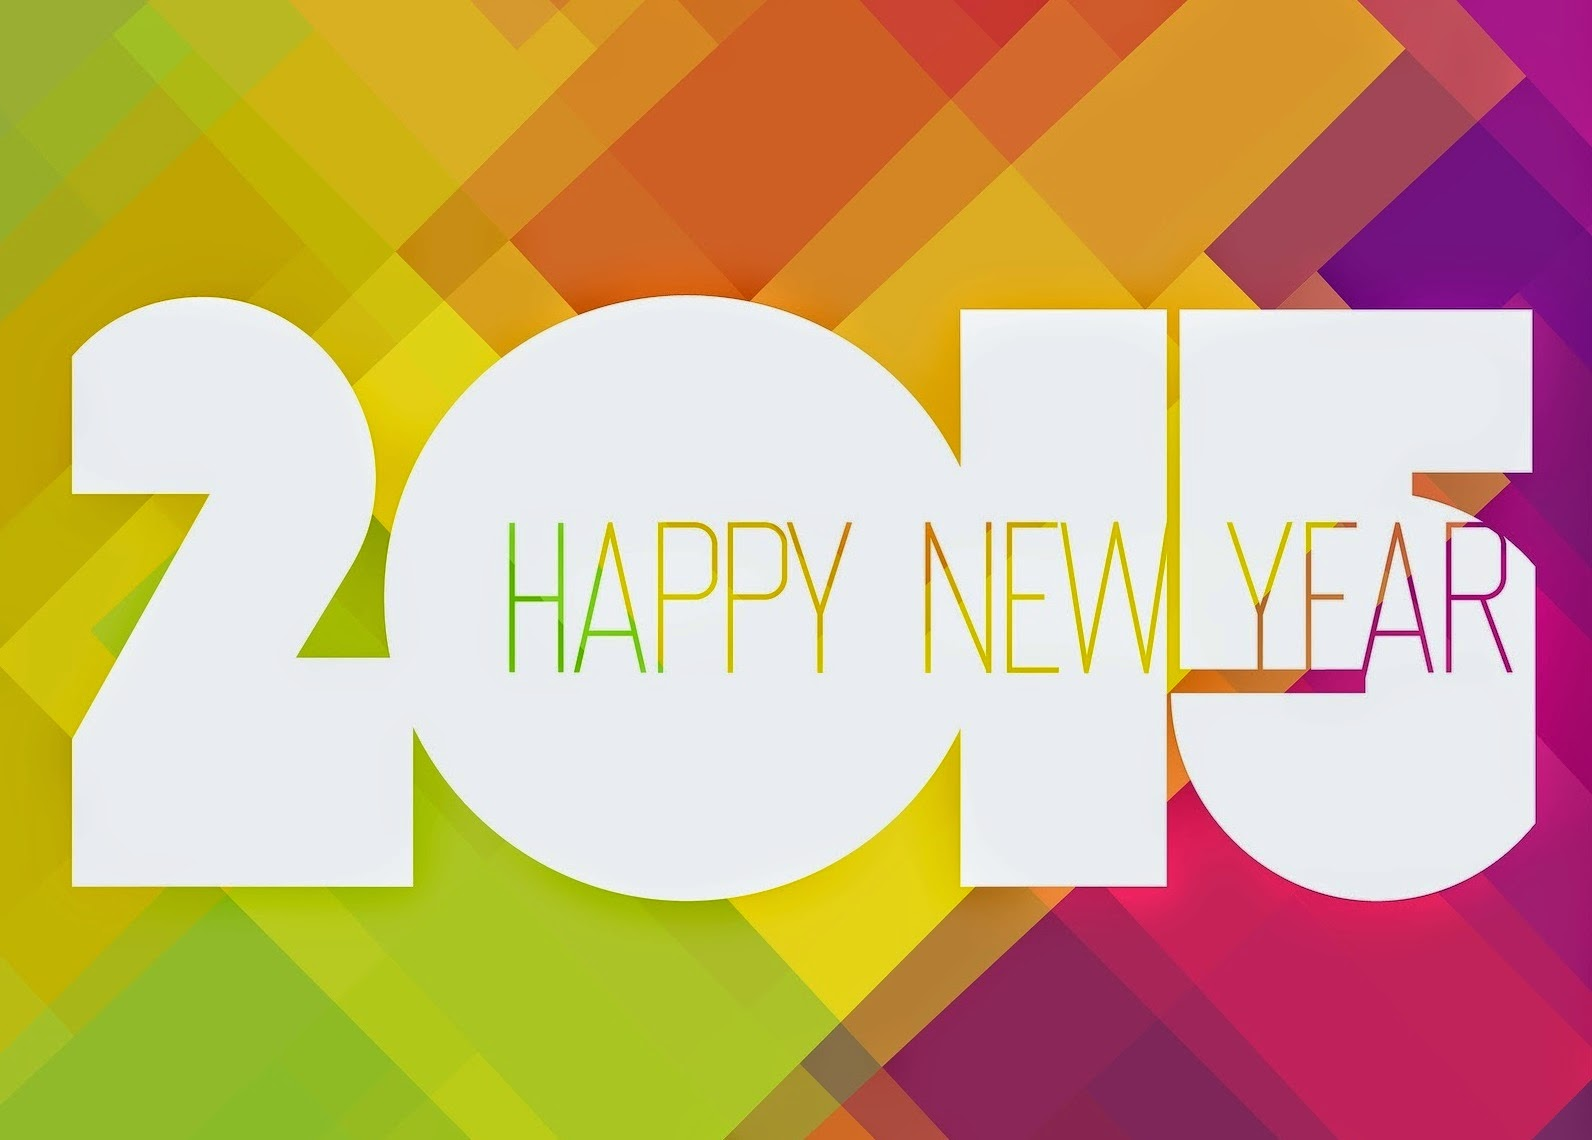 Happy New Year 2015 Punjabi Wishes Greetings Messages Happy New